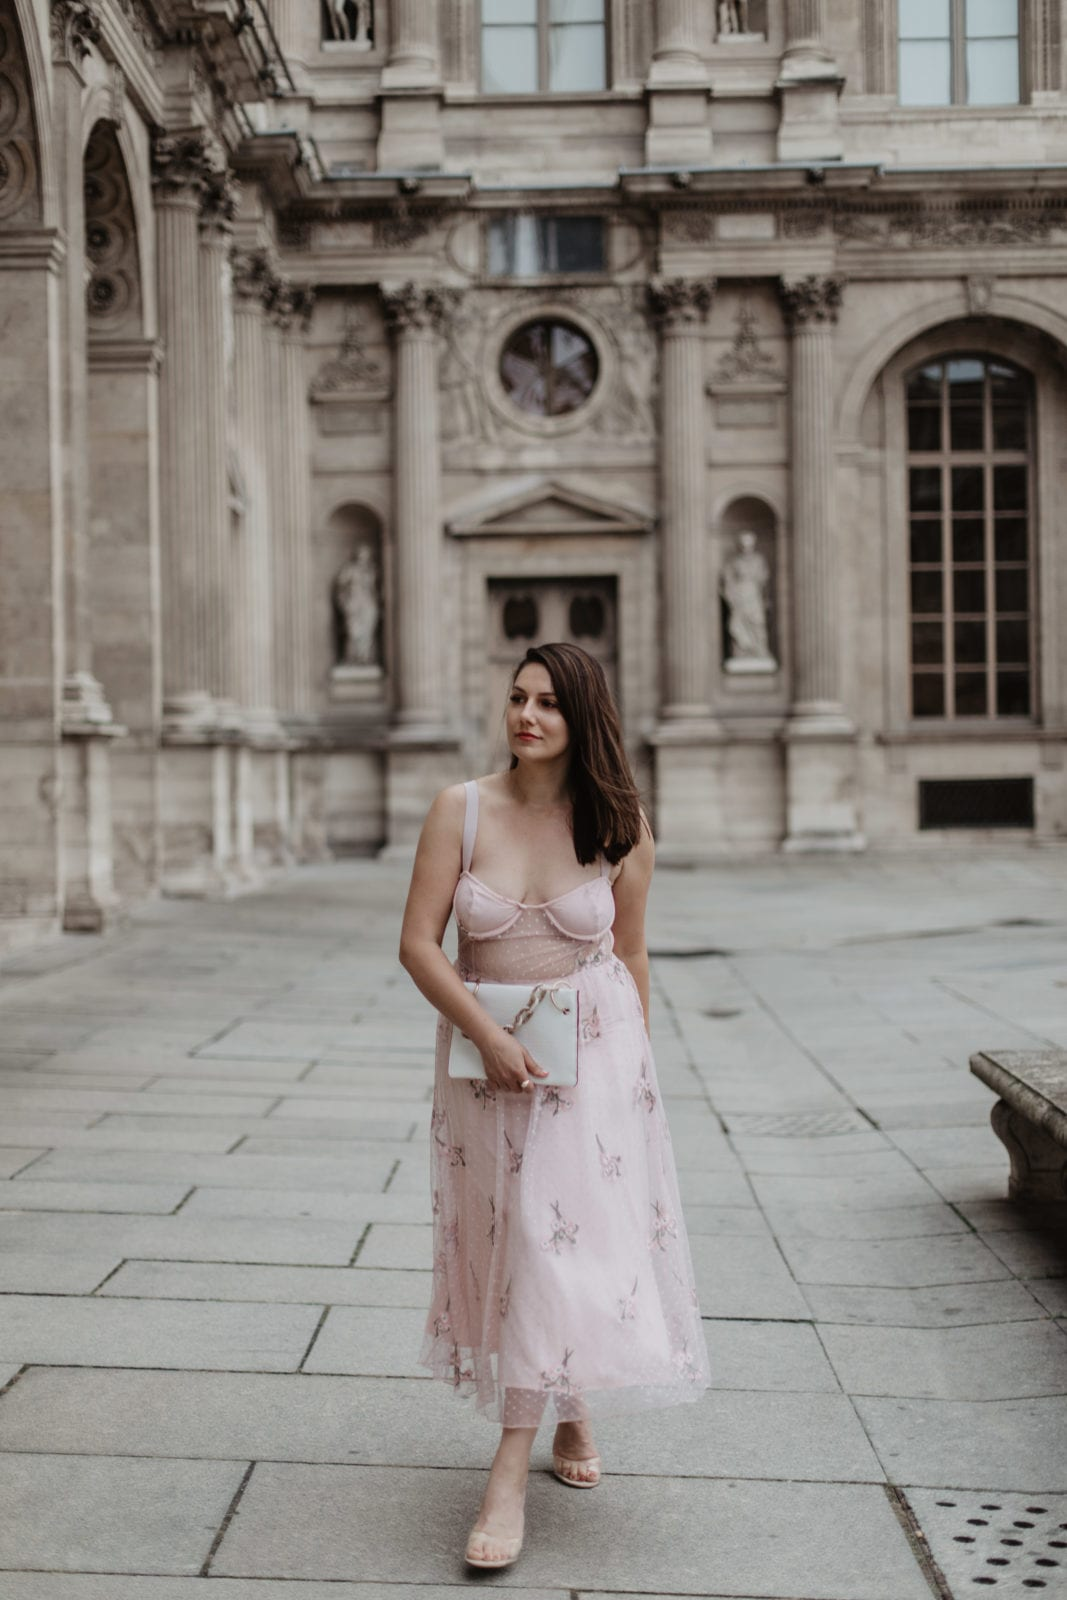 This is a photo of Adaleta Avdic rocking a pink Revolve dress in Paris France.